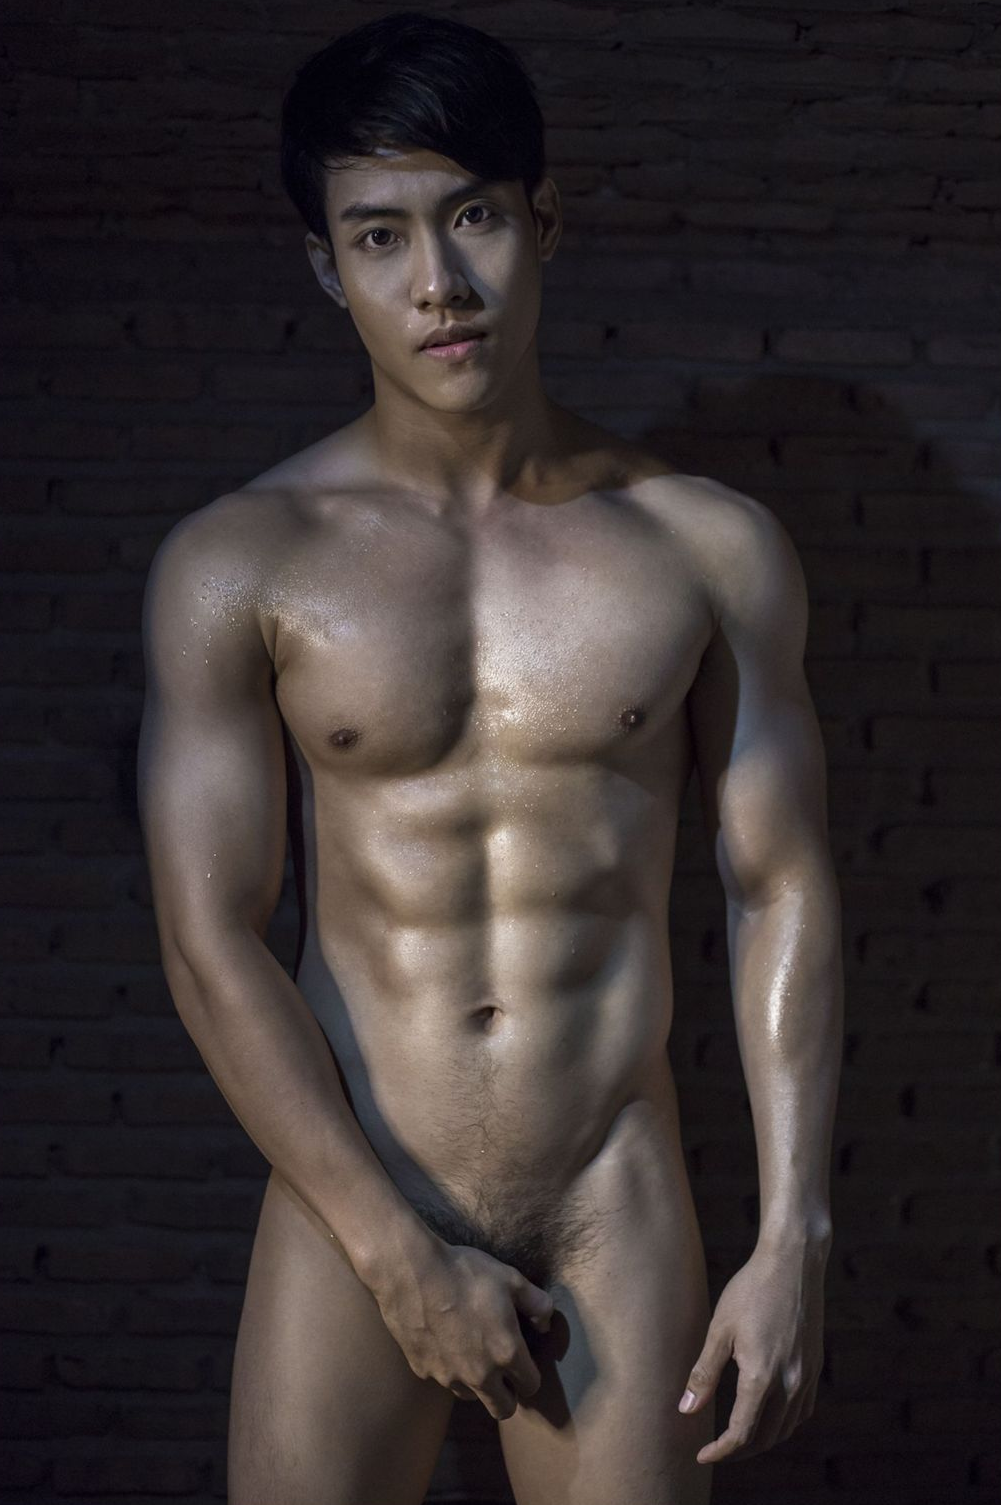 asian-gay-photo-model-03